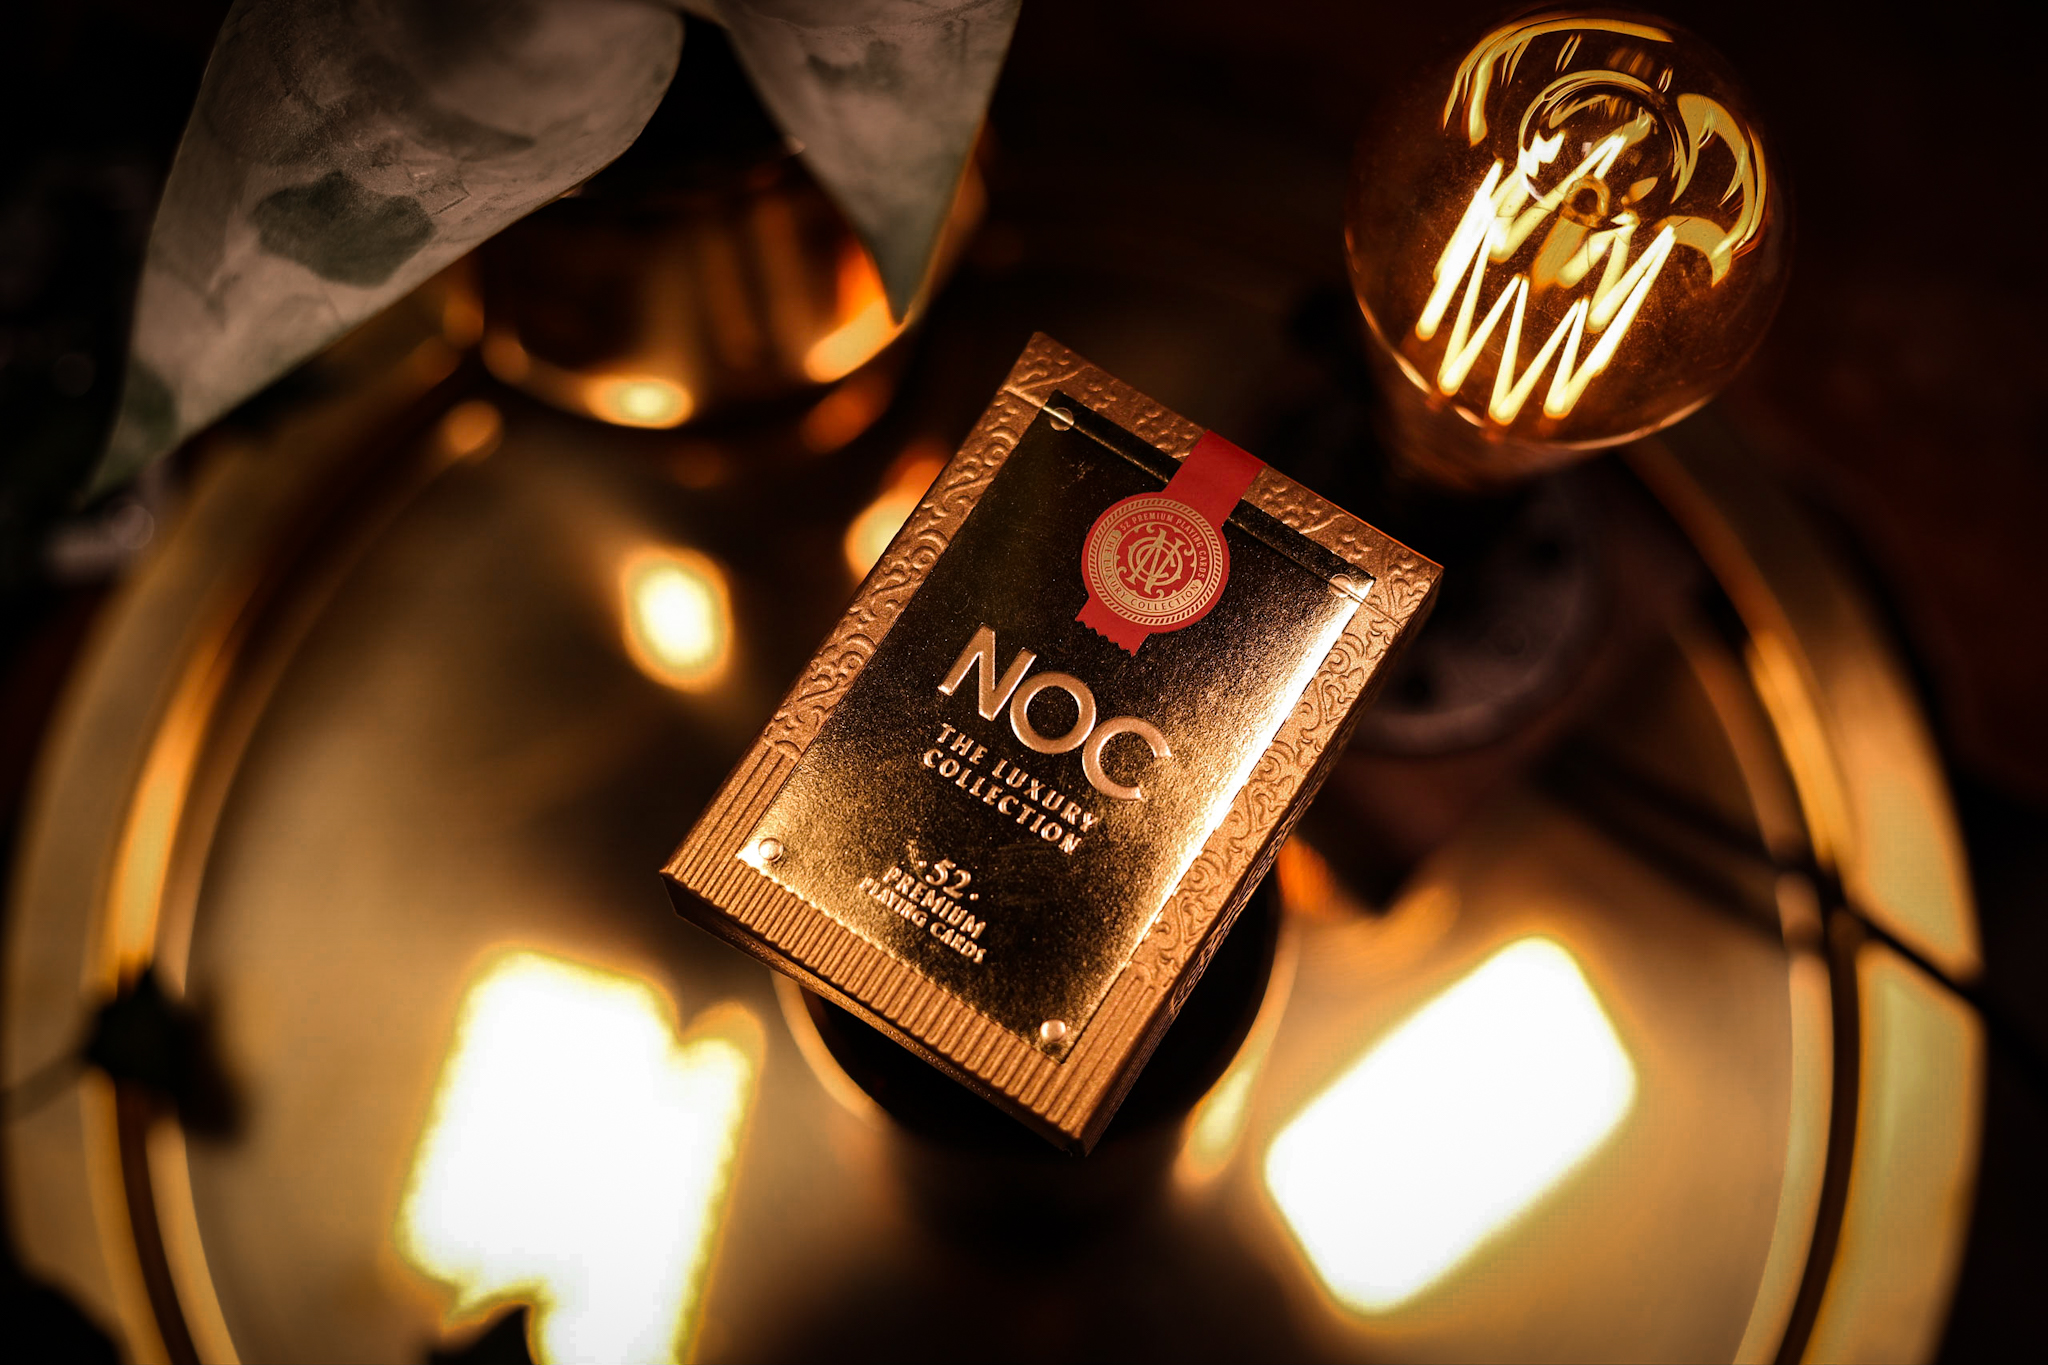 Tuck Box Design for NOC: The Luxury Collection Playing Cards Created by Widakk Design